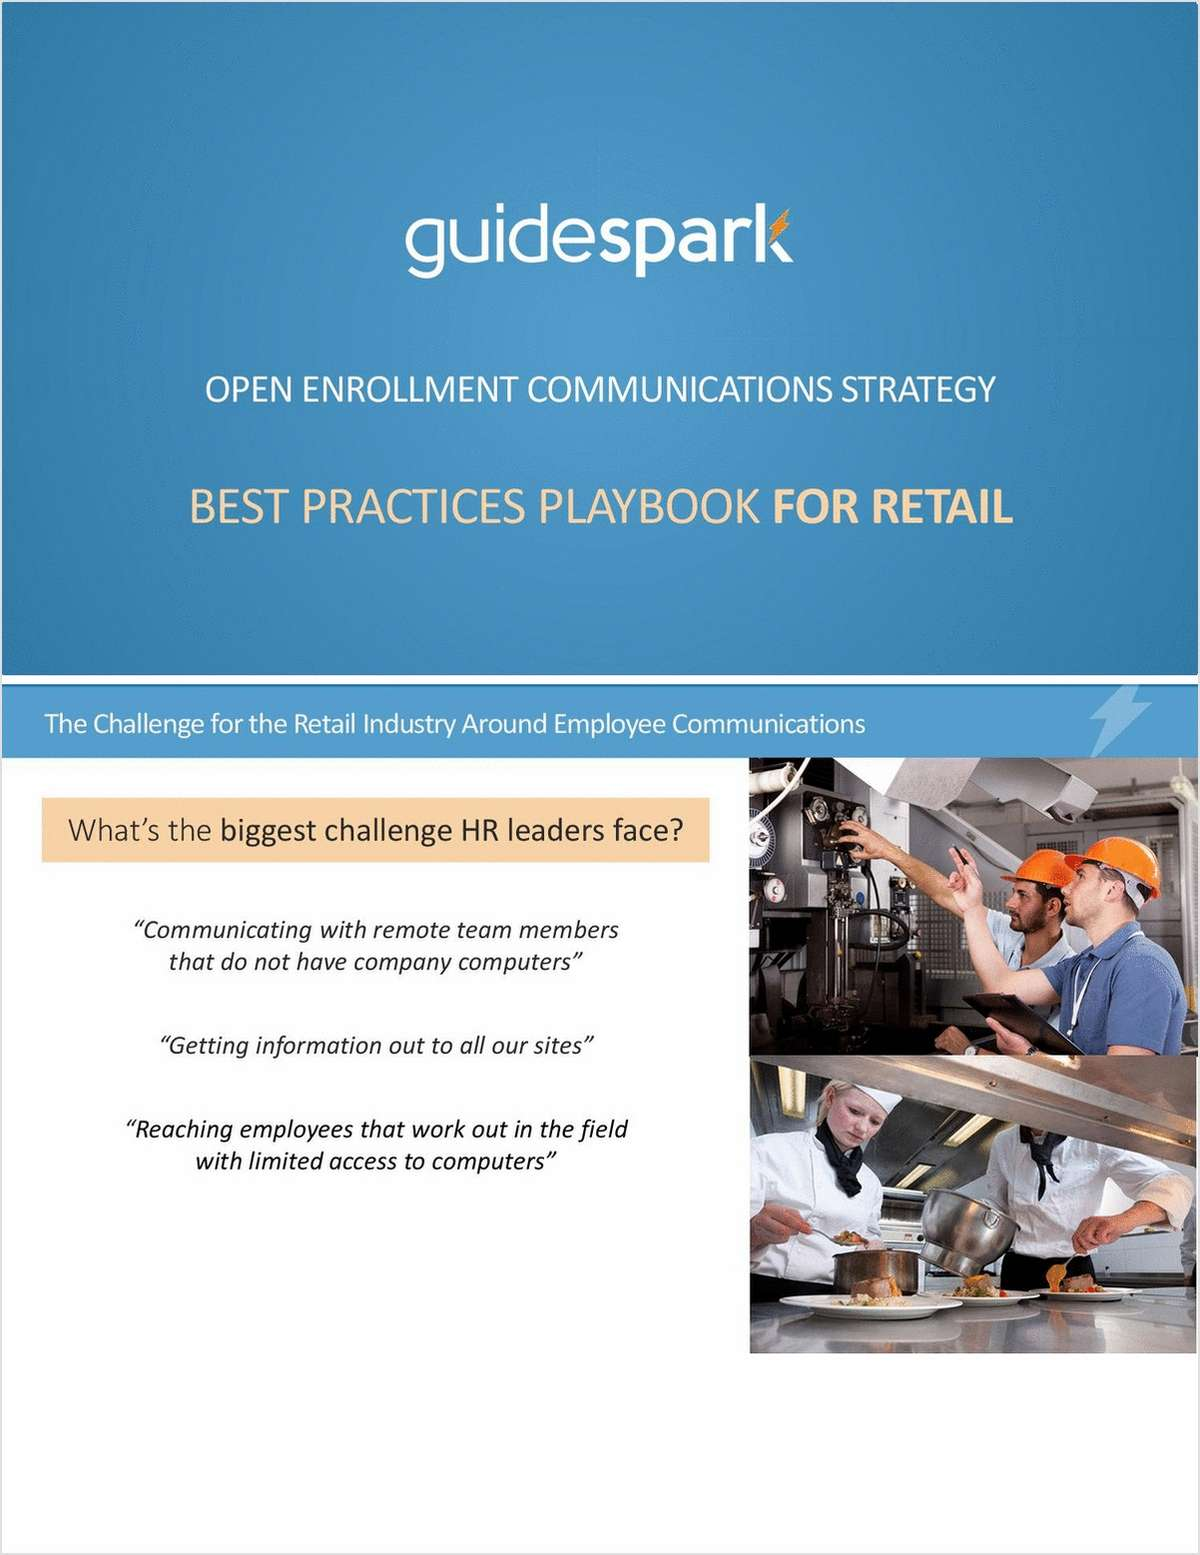 Retail Best Practices Playbook for Open Enrollment Communication